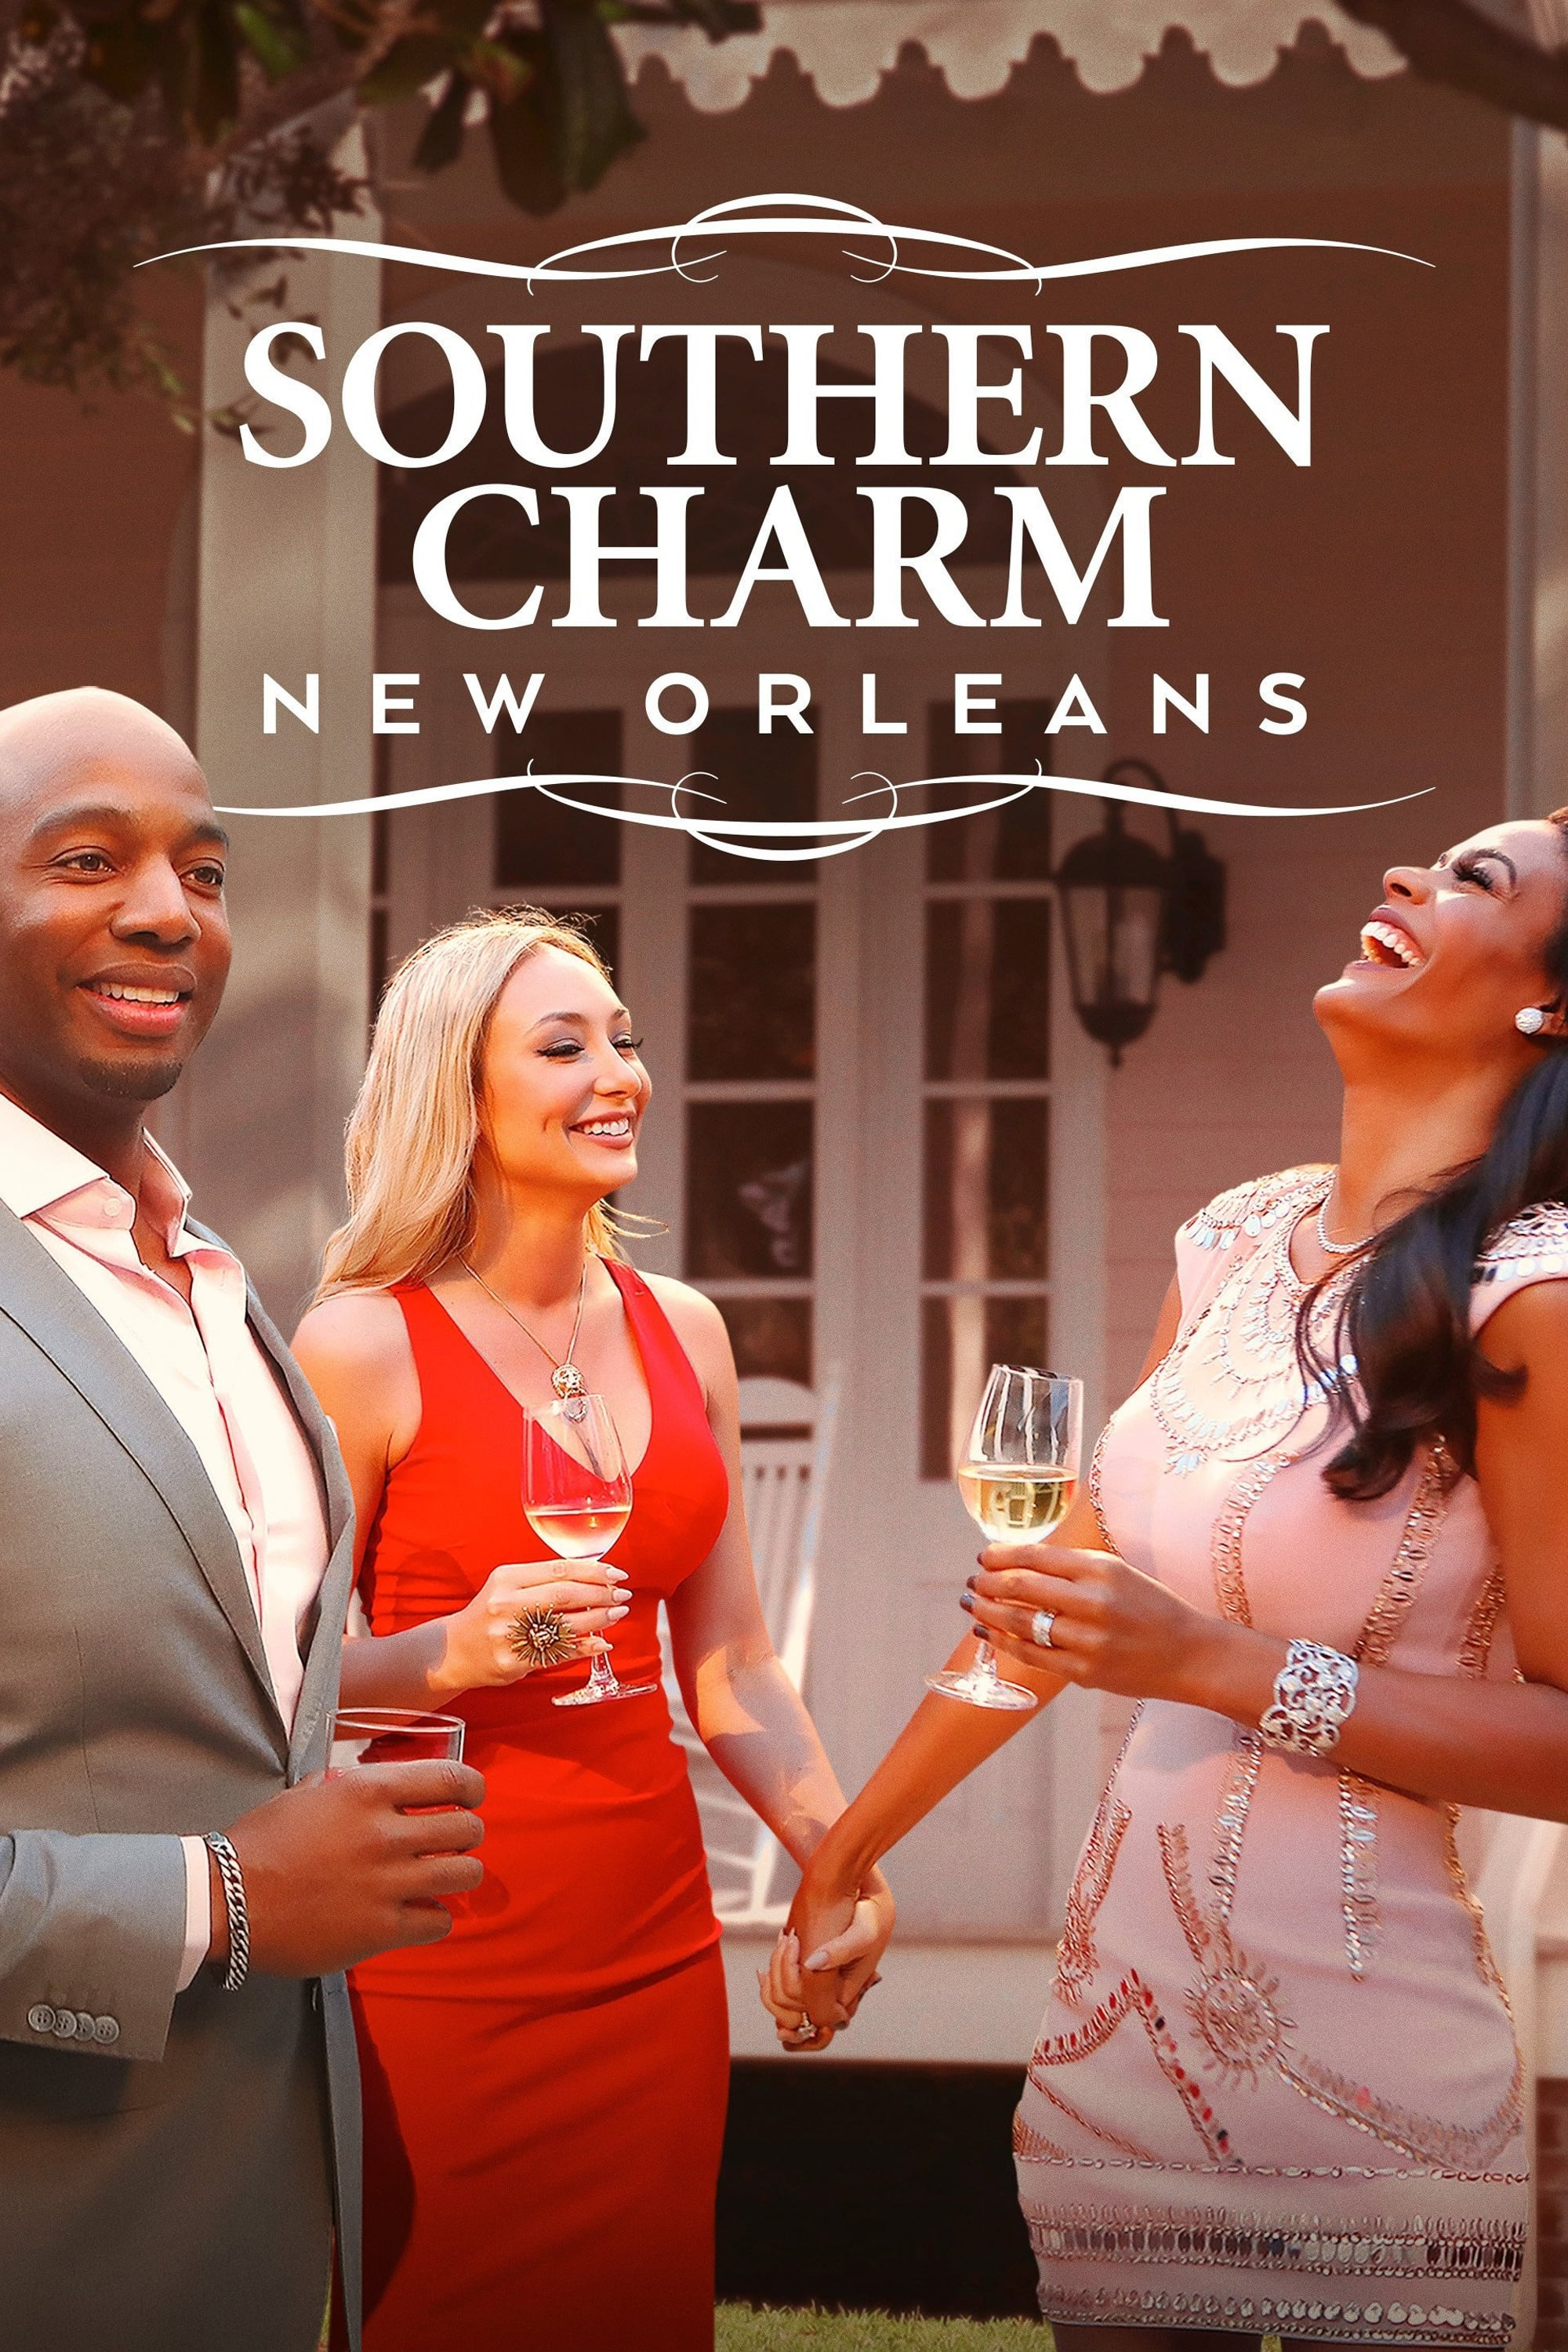 Southern Charm New Orleans